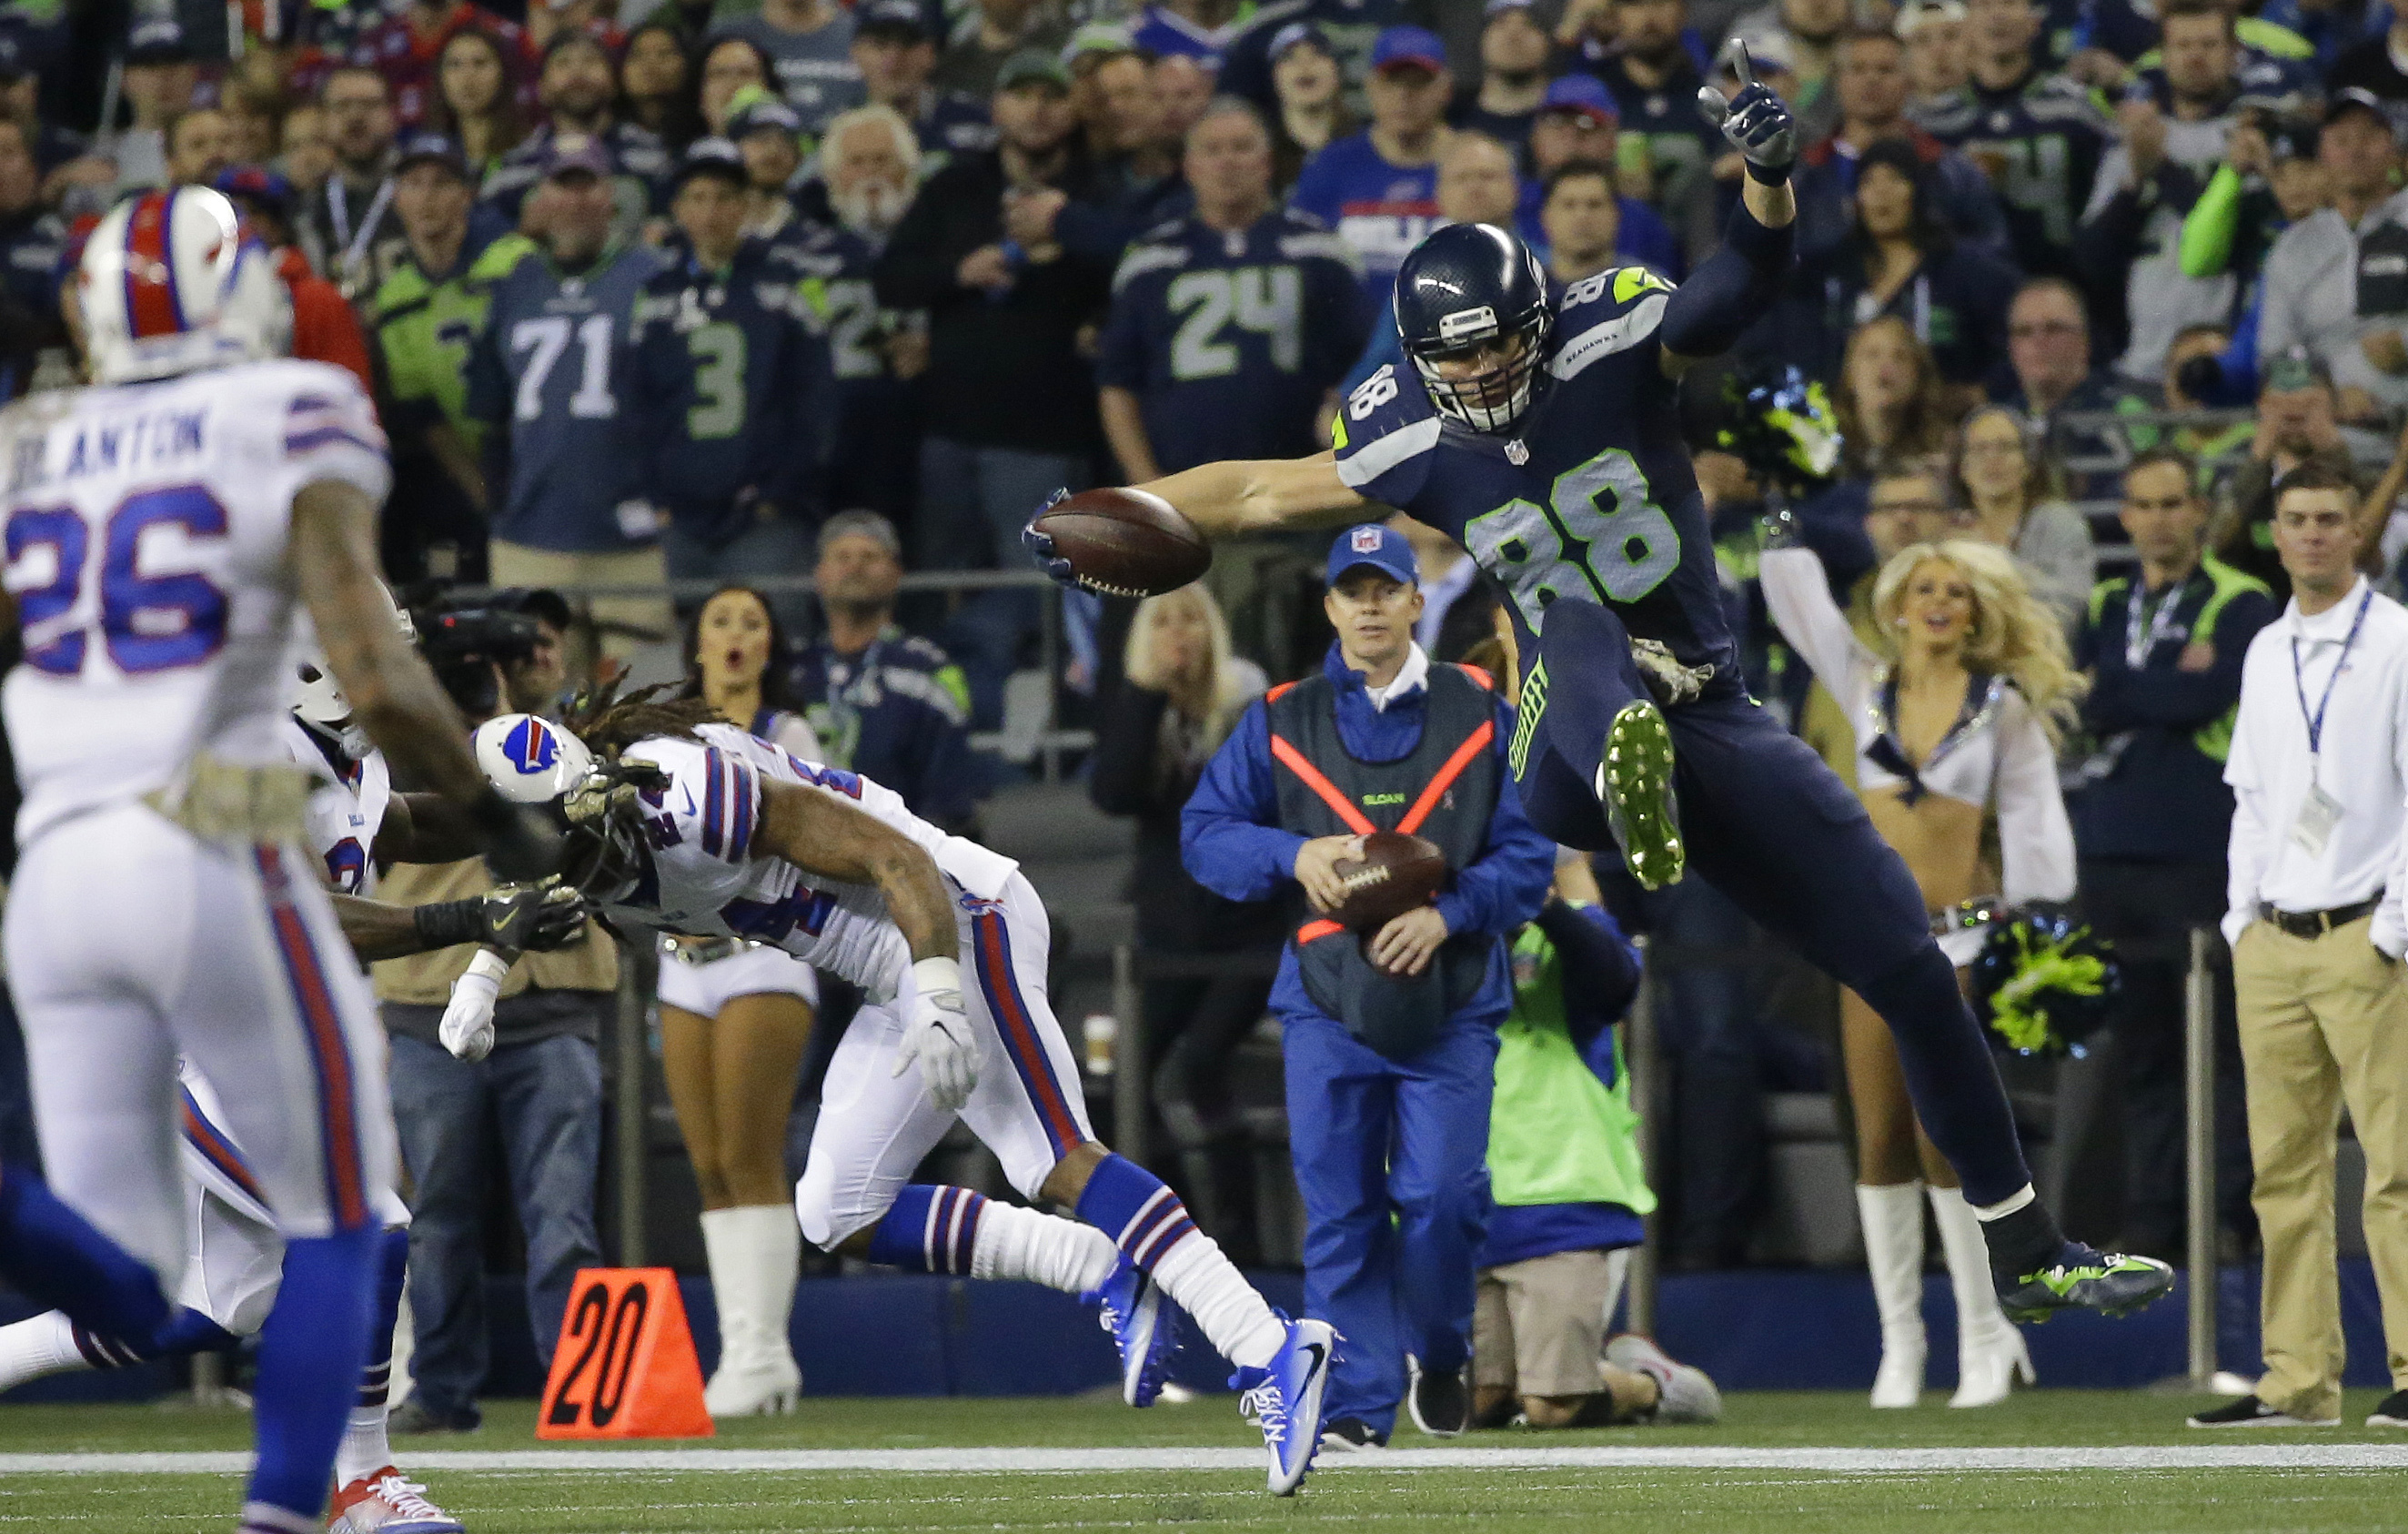 Seattle Seahawks tight end Jimmy Graham (88) leaps over Buffalo Bills cornerback Stephon Gilmore, second from left, in the first half of an NFL football game, Monday, Nov. 7, 2016, in Seattle. (AP Photo/Elaine Thompson)